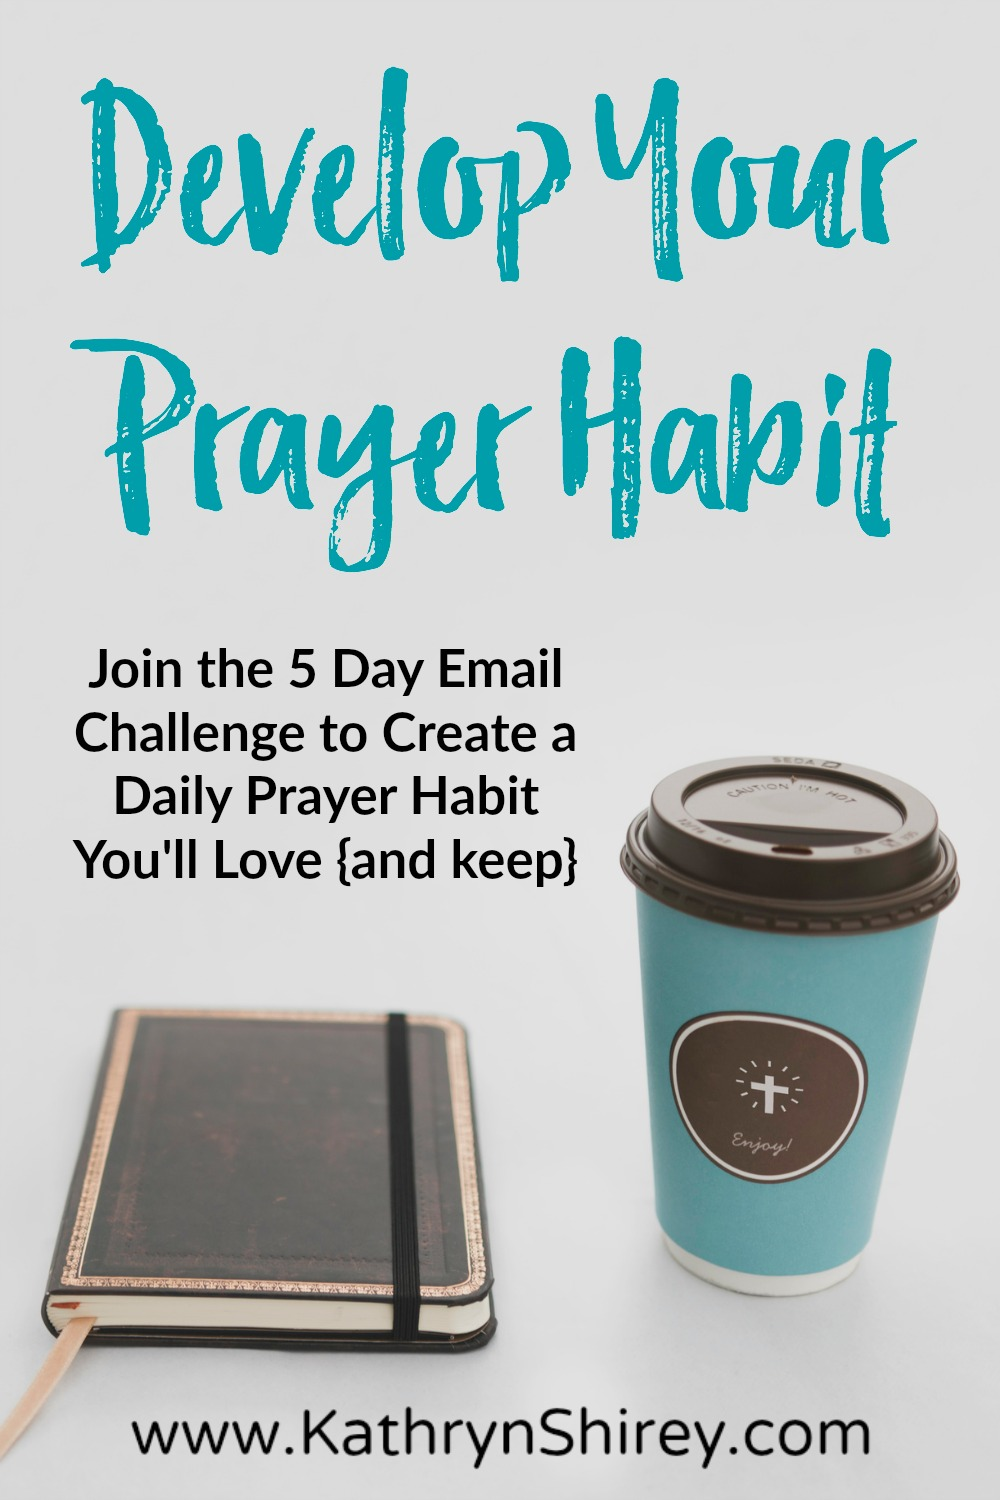 Don't think you have time for daily prayer? Want to build a more consistent, lasting prayer habit? Join this FREE 5-day email challenge to develop a prayer habit you'll LOVE and KEEP! Sign up today and get started!